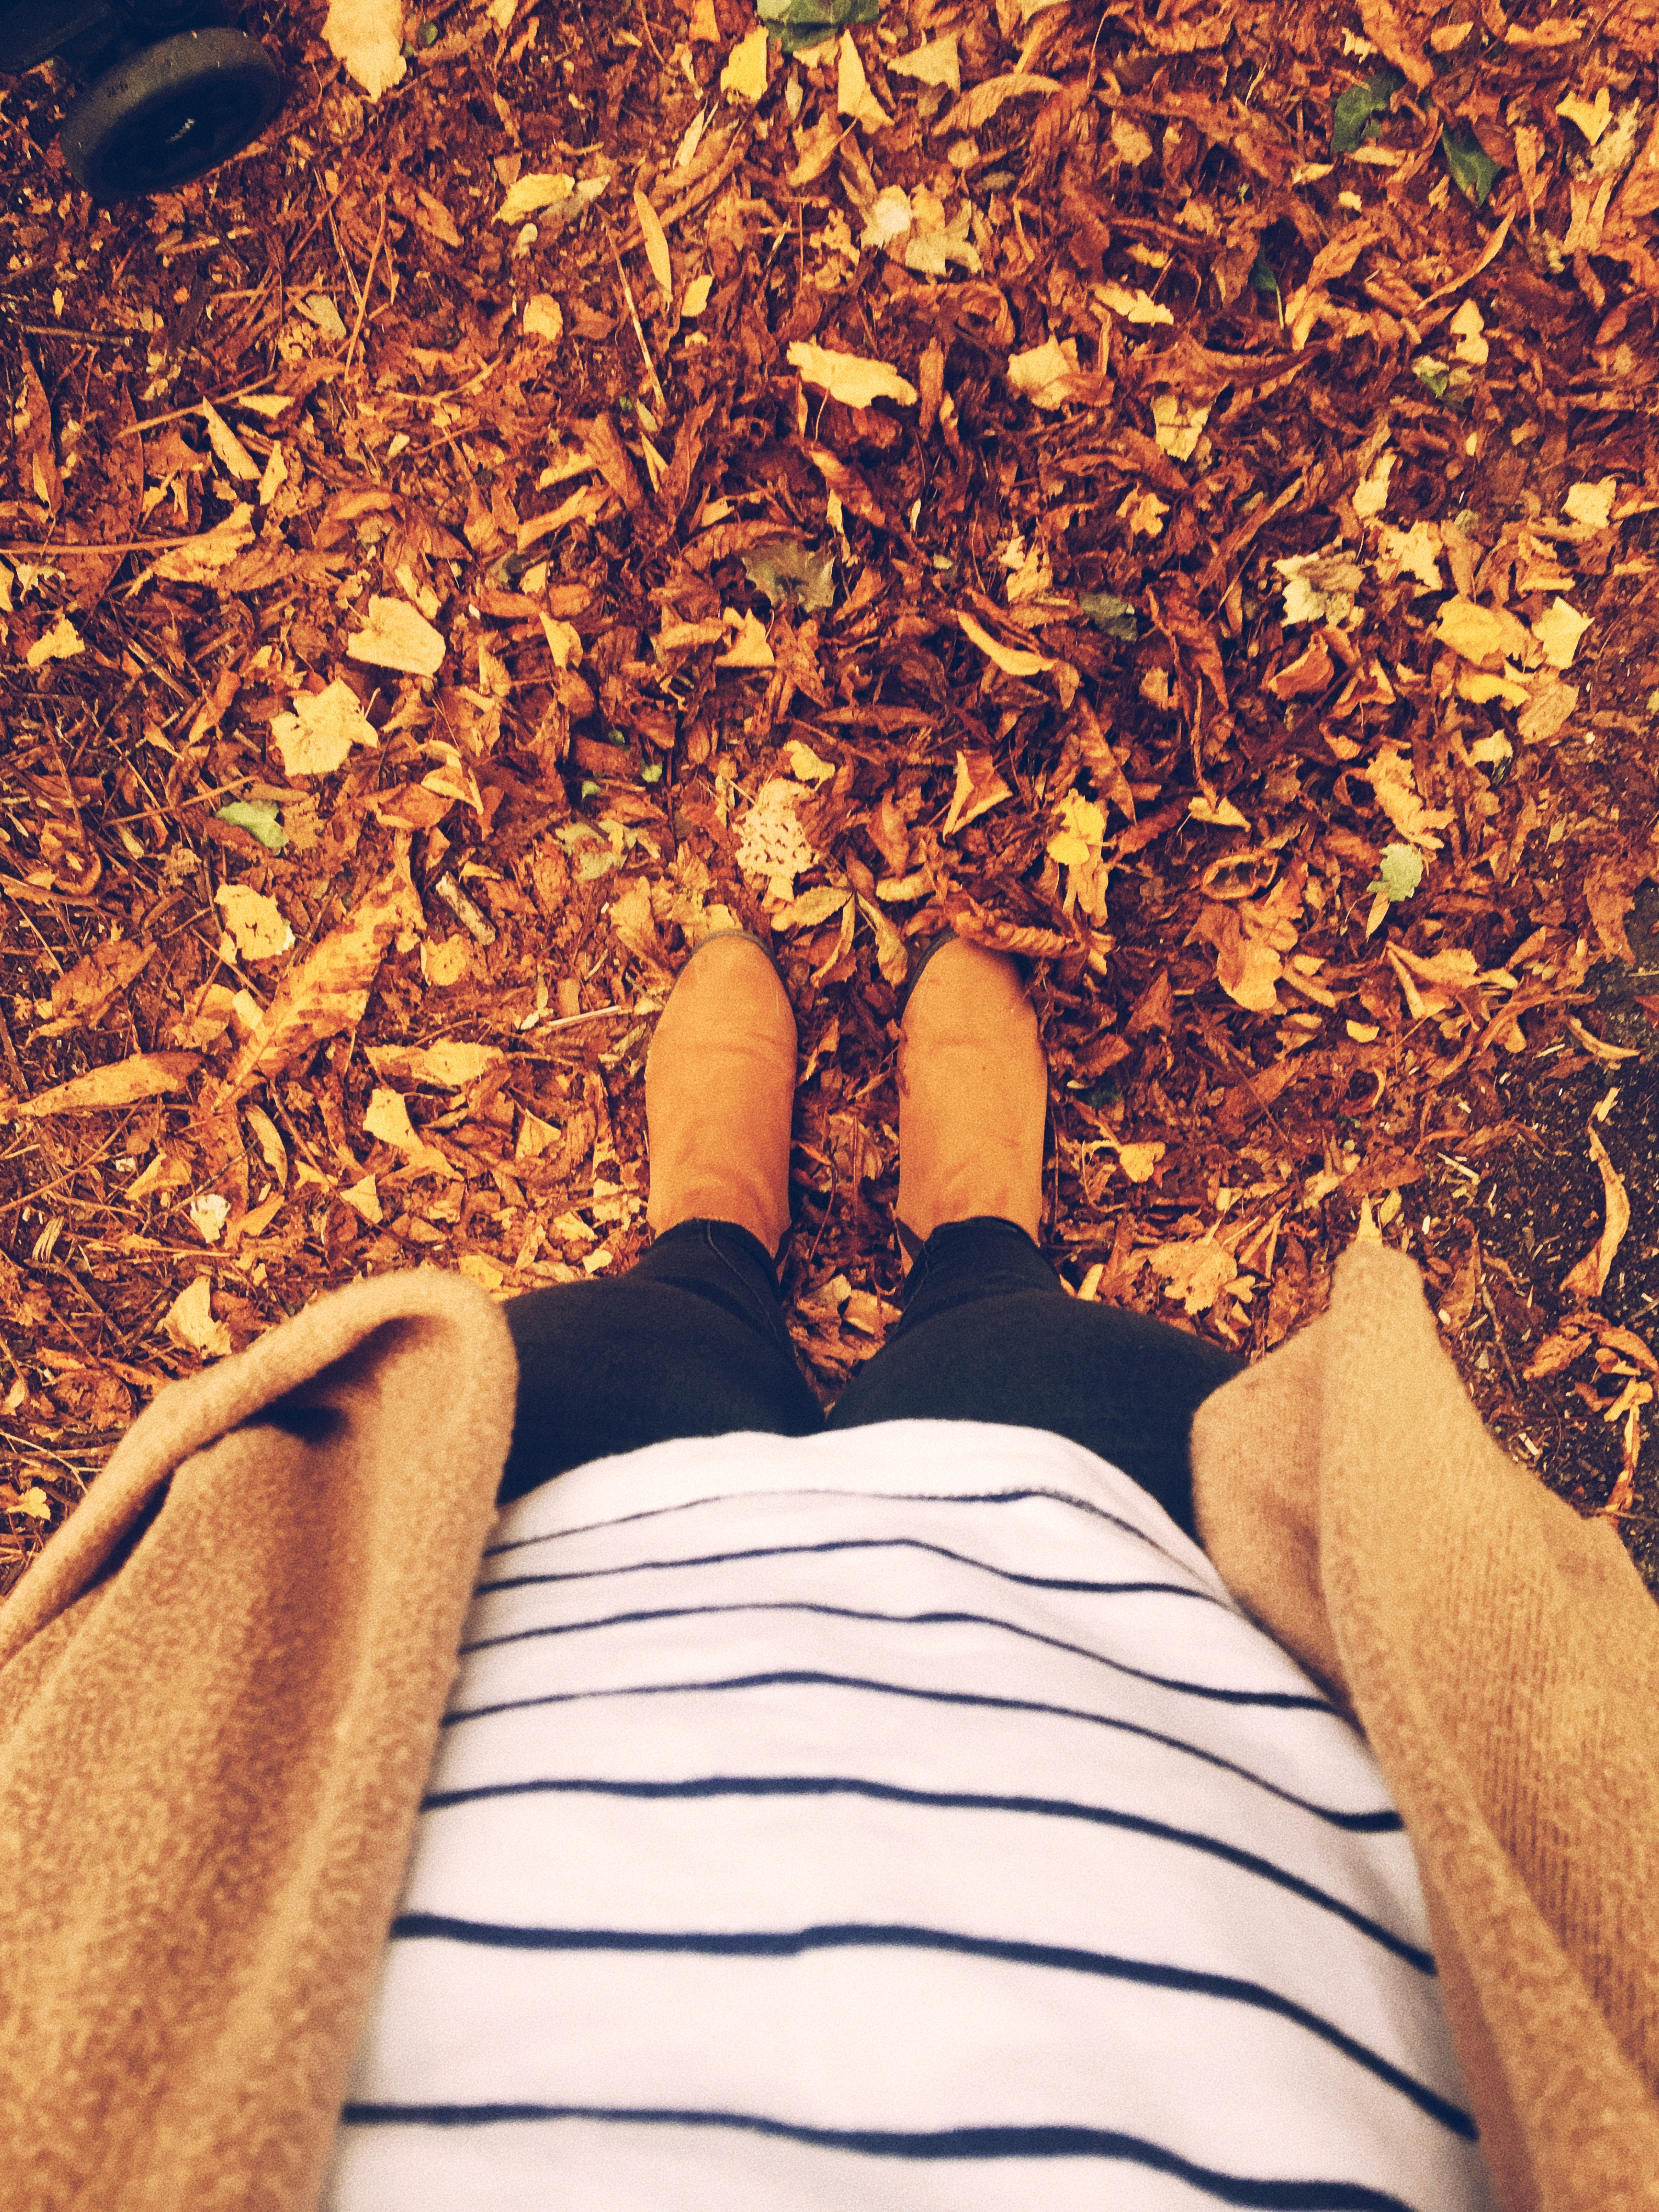 Autumn outfit image standing in autumnal coloured leaves